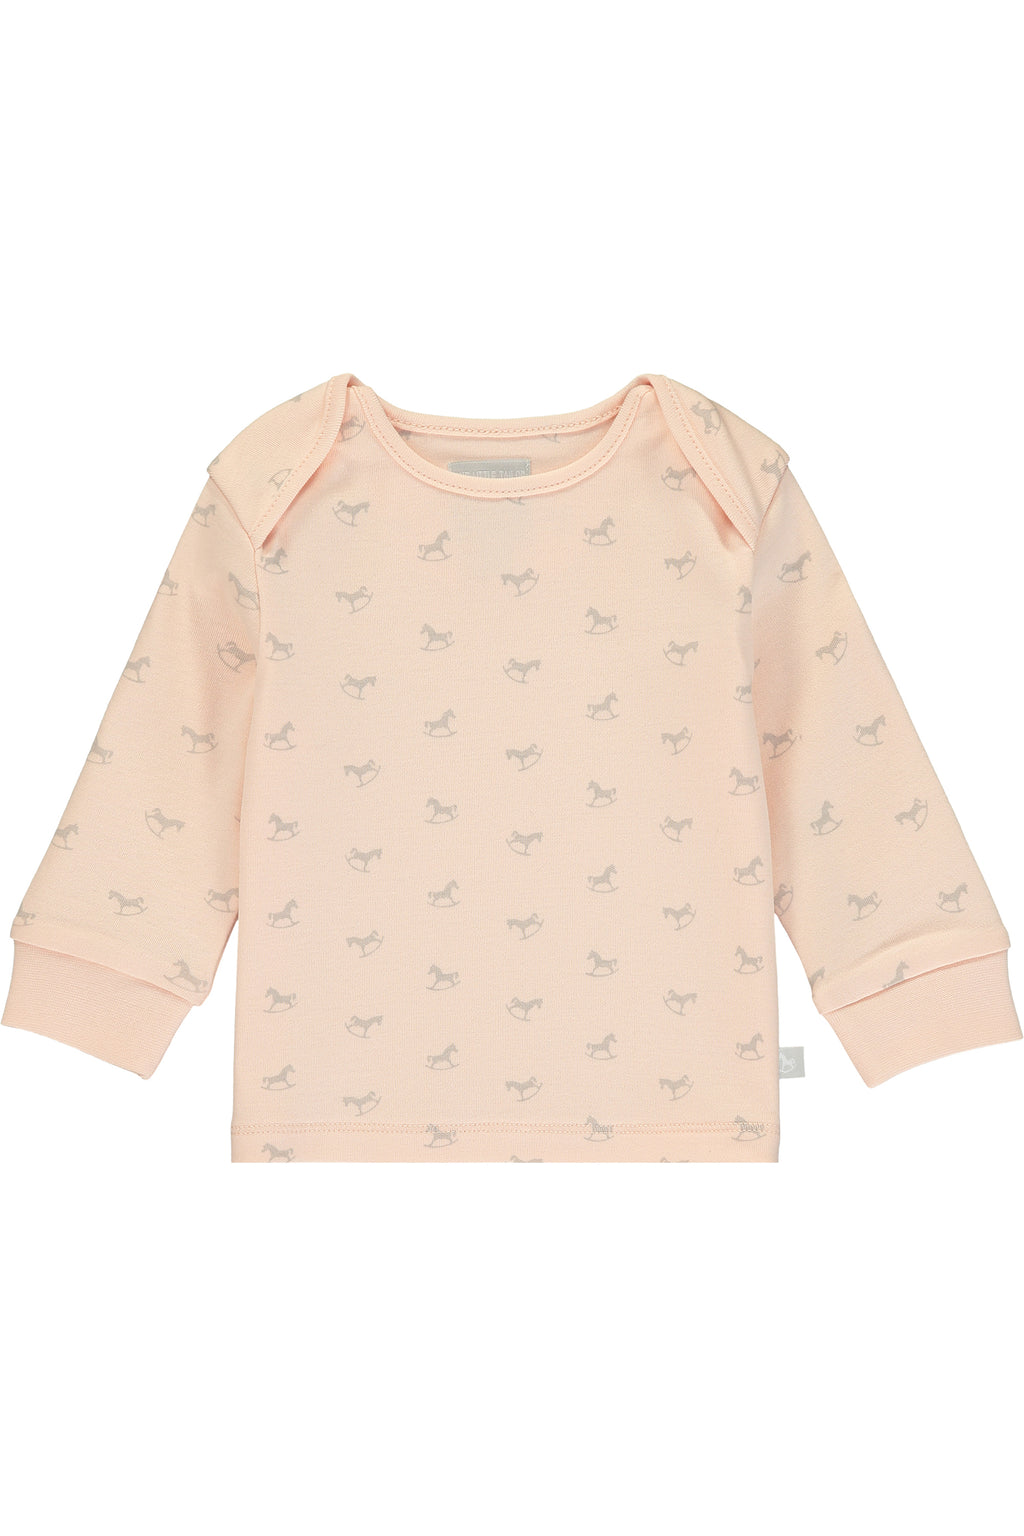 Super Soft Jersey Rocking Horse Top - pink